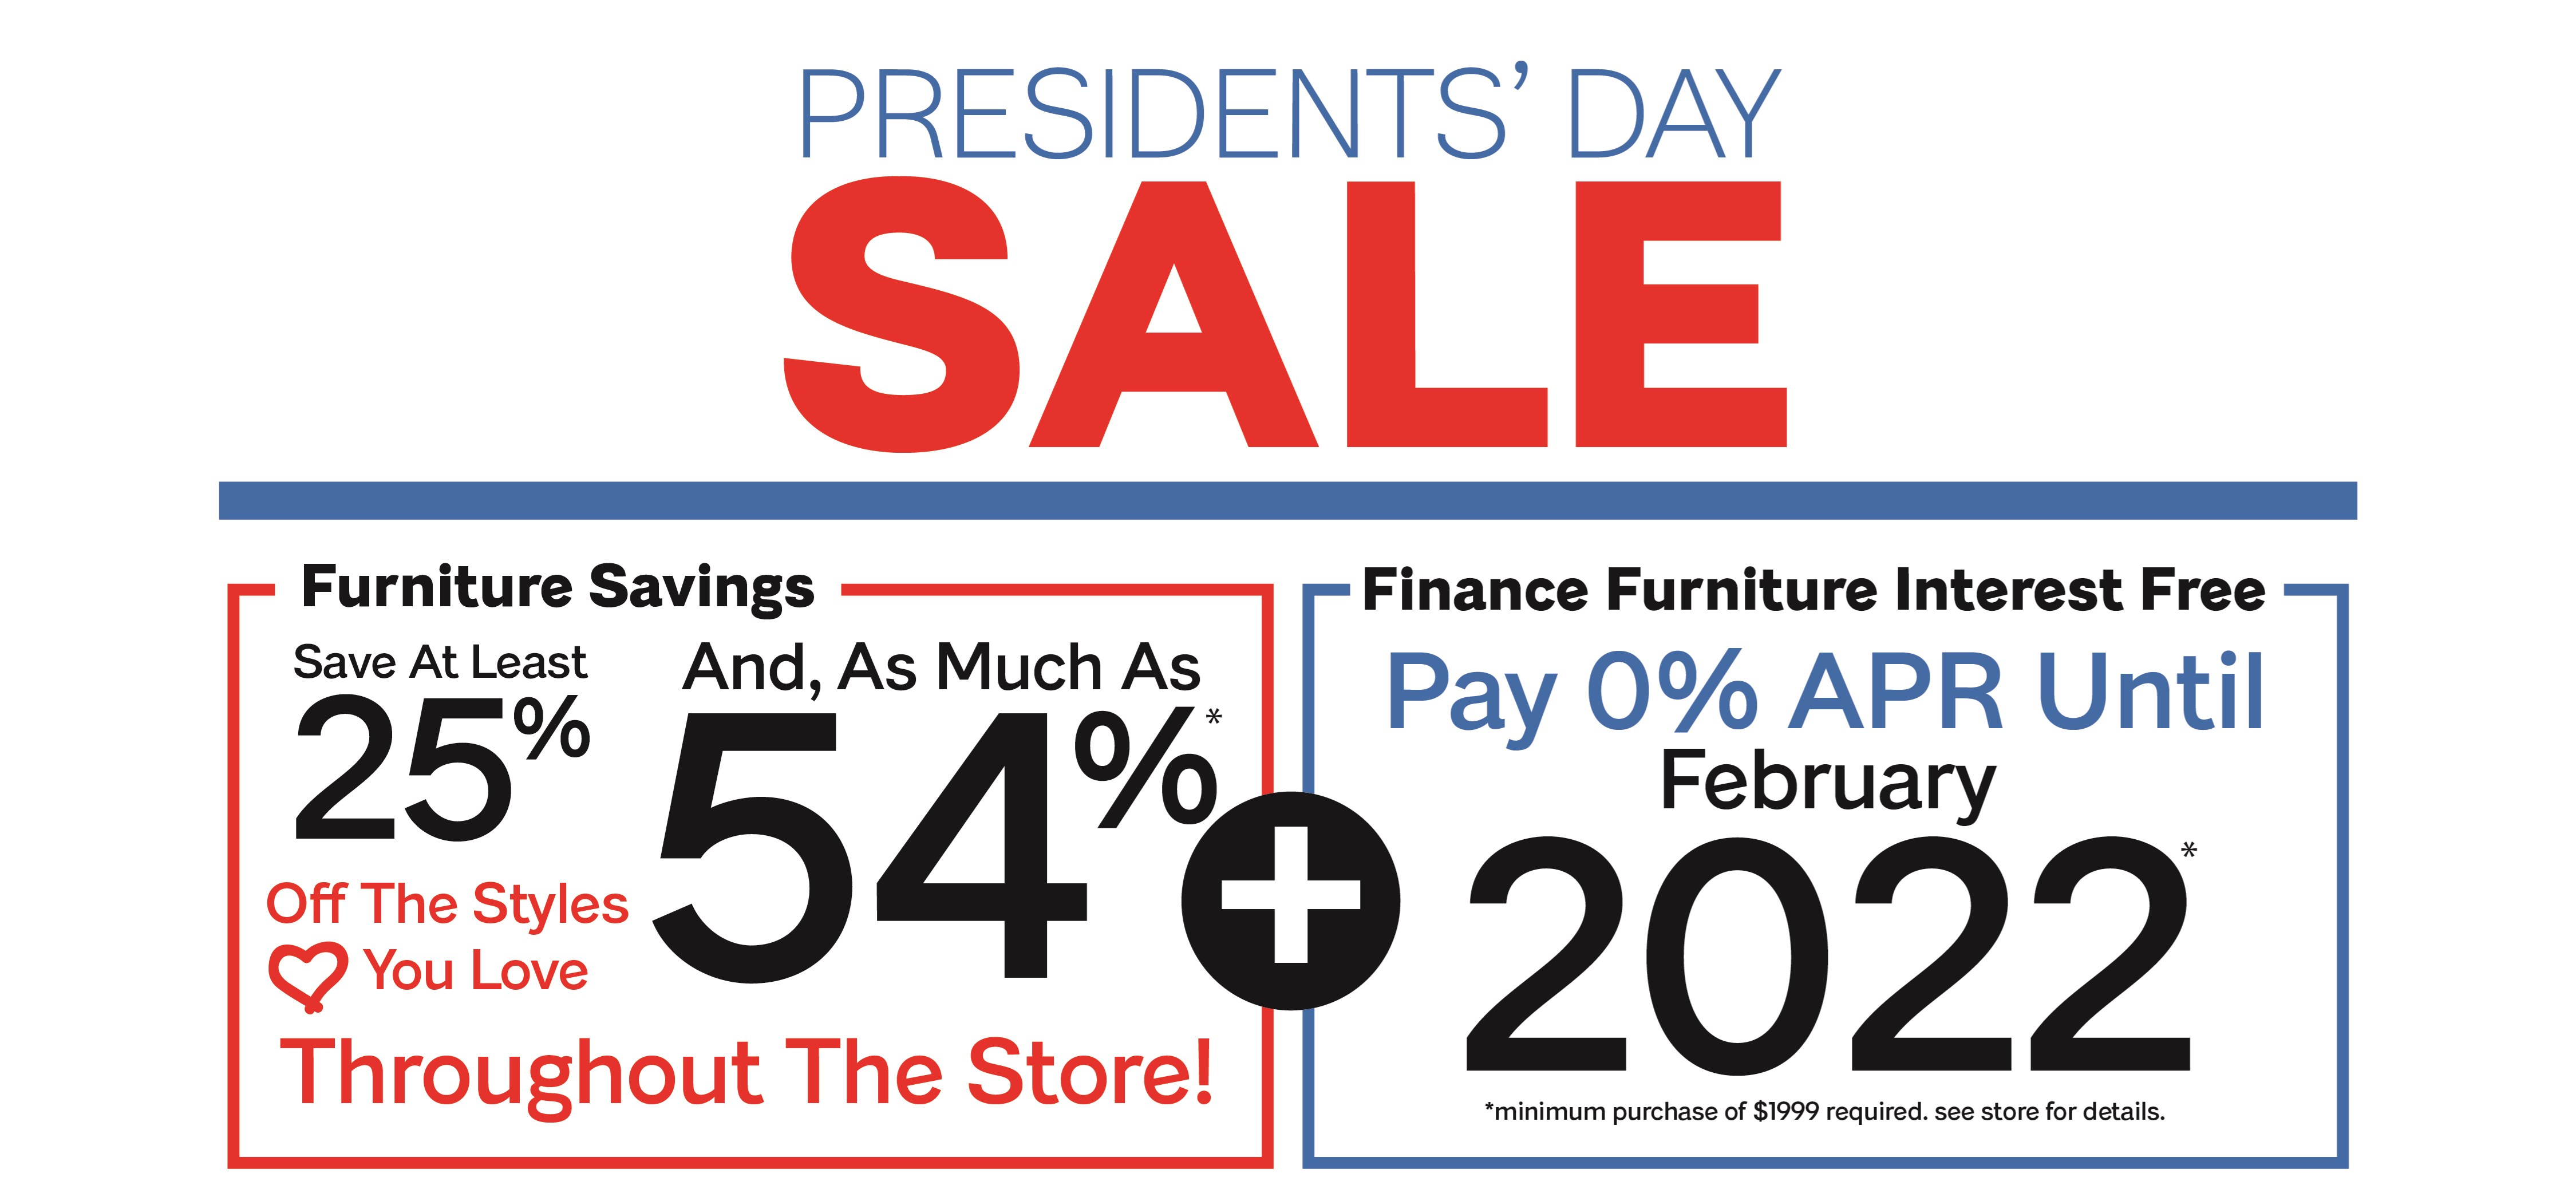 Presidents' Day Furniture Browse Page